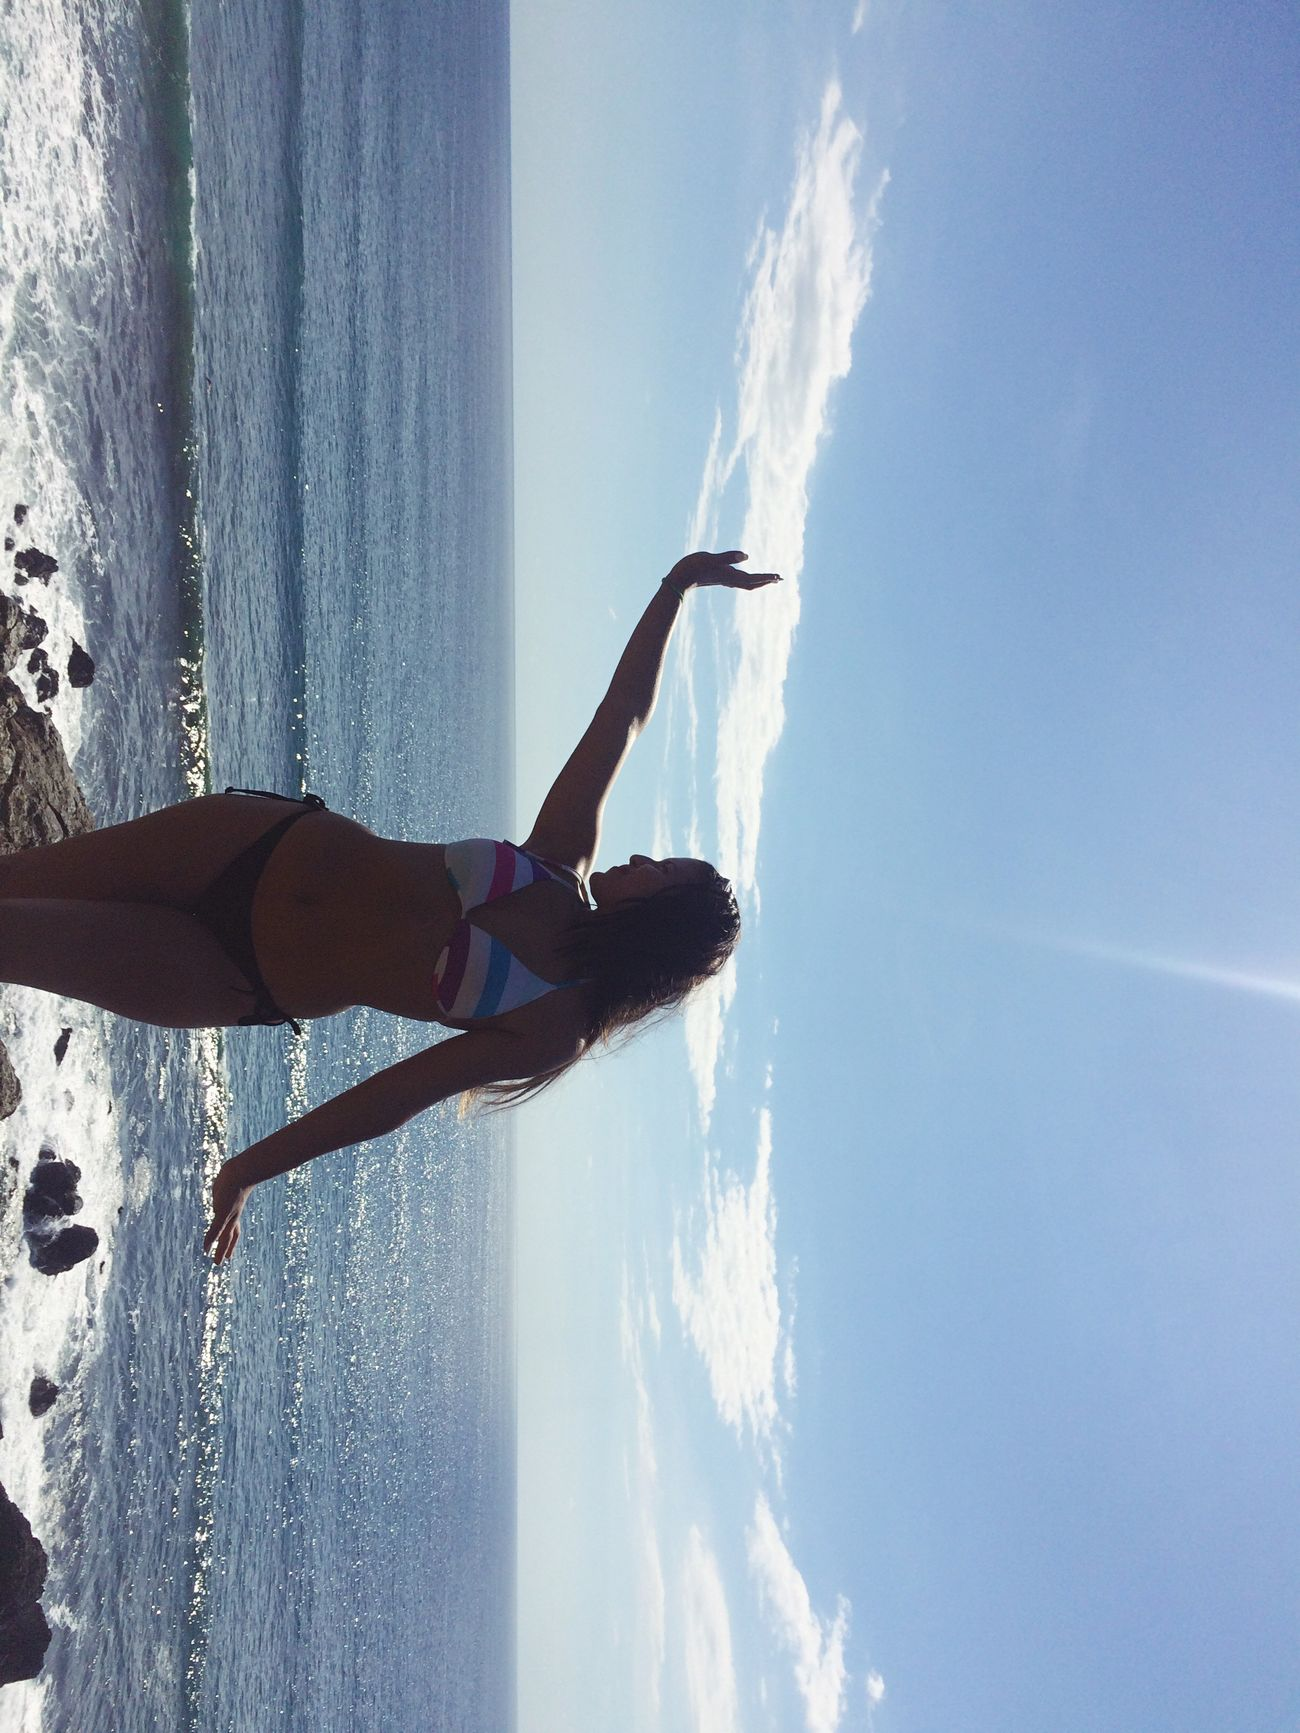 Sea Water Sky Nature Beauty In Nature Outdoors Beach Beachbum Bikini Time❤ Tanning ☀ Freepeople Costarica Photography Enjoy With Mylove Oceanview The Best